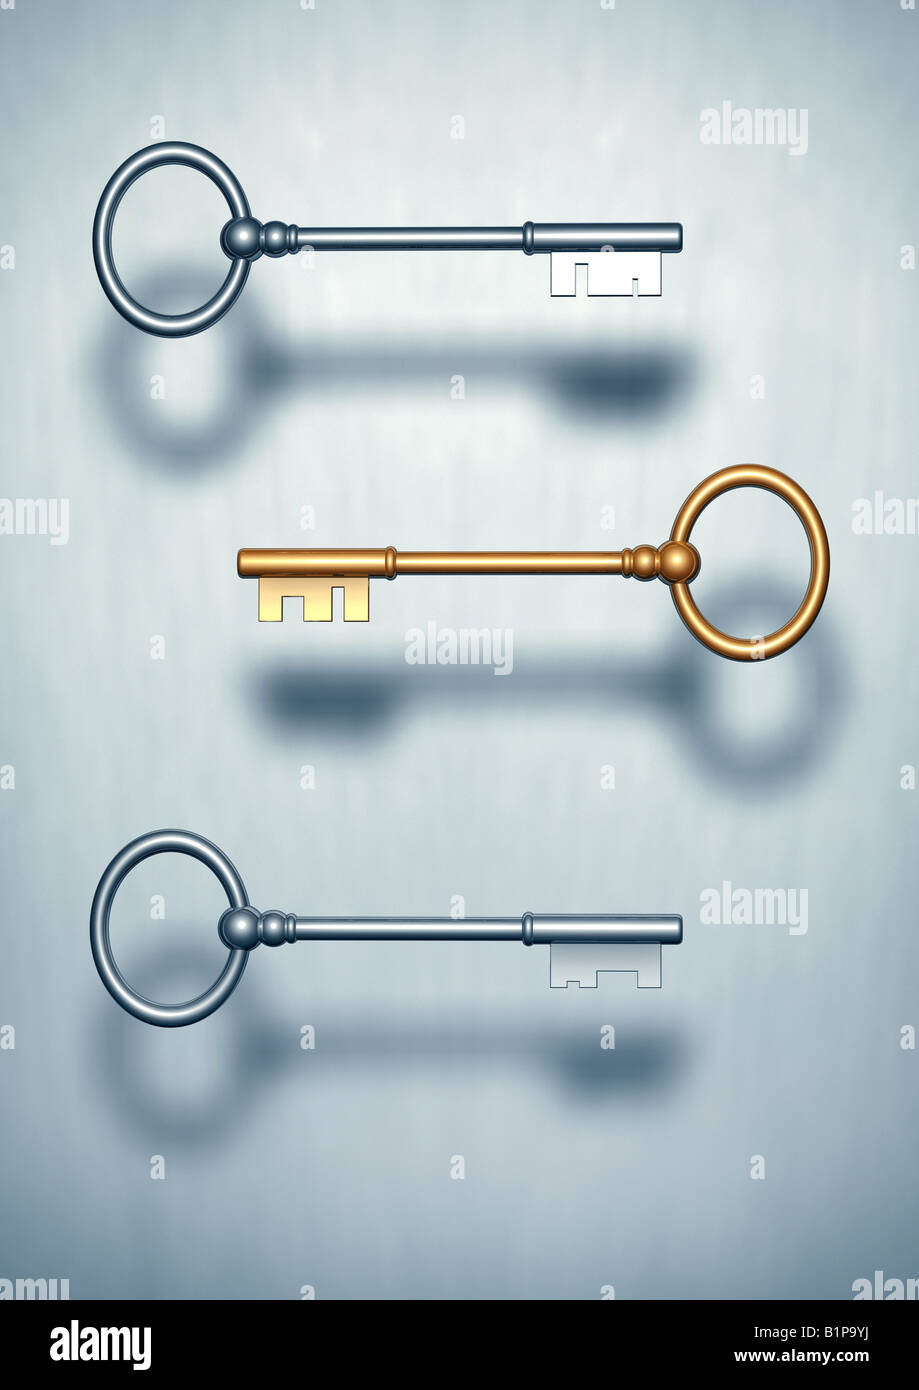 three keys the road to success 3 Schluessel einer golden Schluessel zum Erfolg - Stock Image